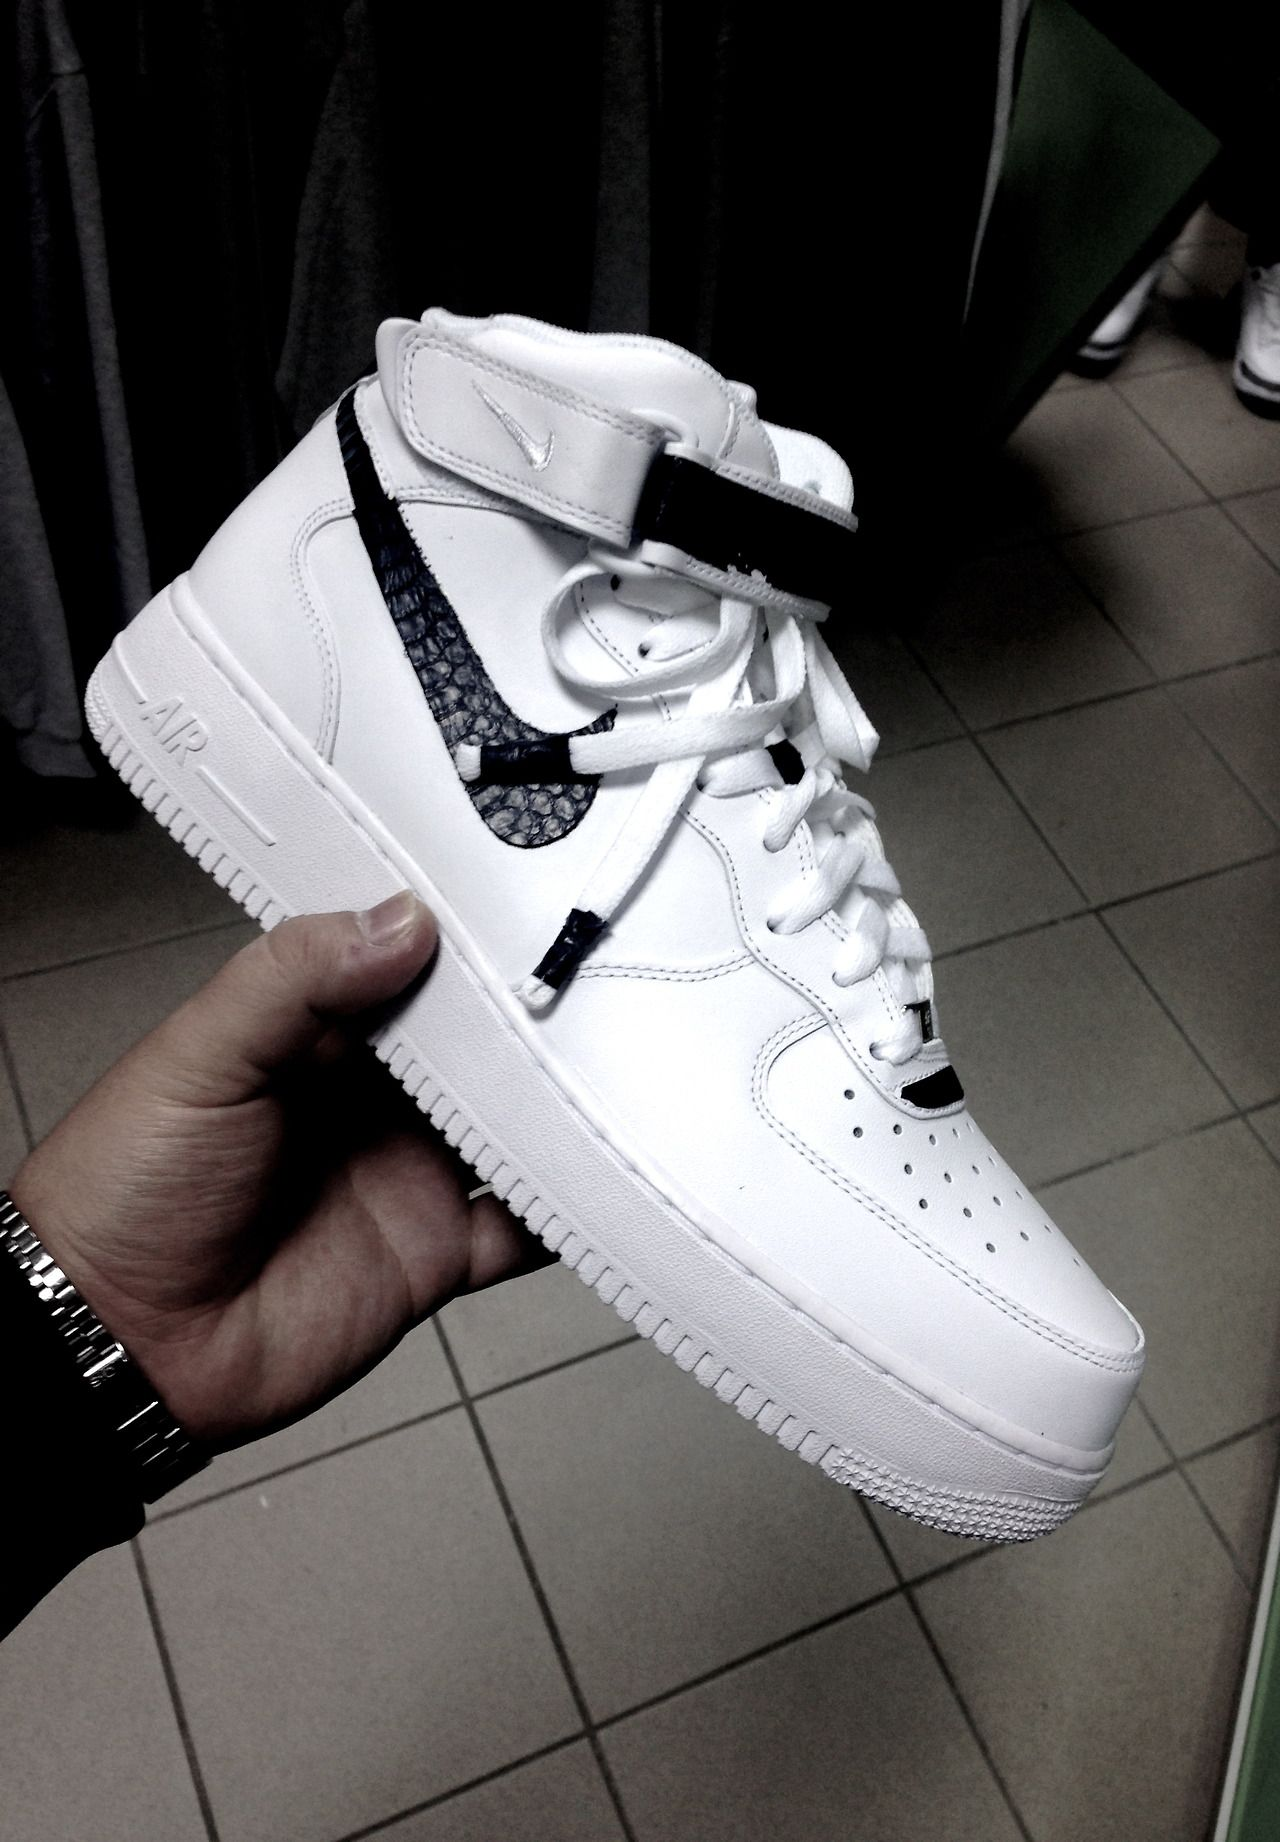 günstigste air force nike damen